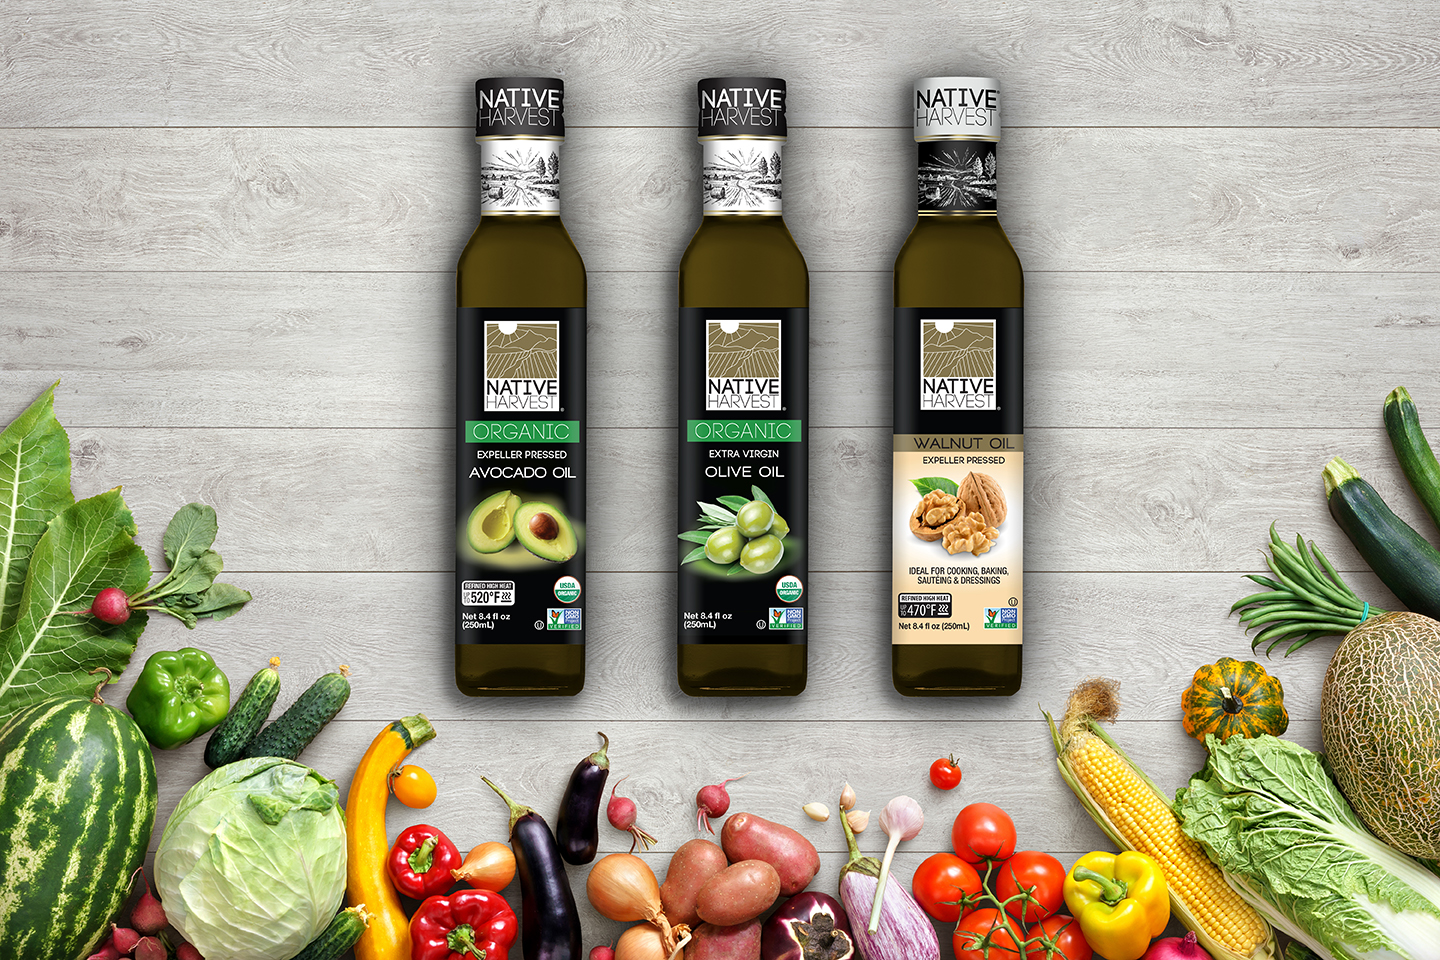 Native Harvest is launching a 250mL product line!